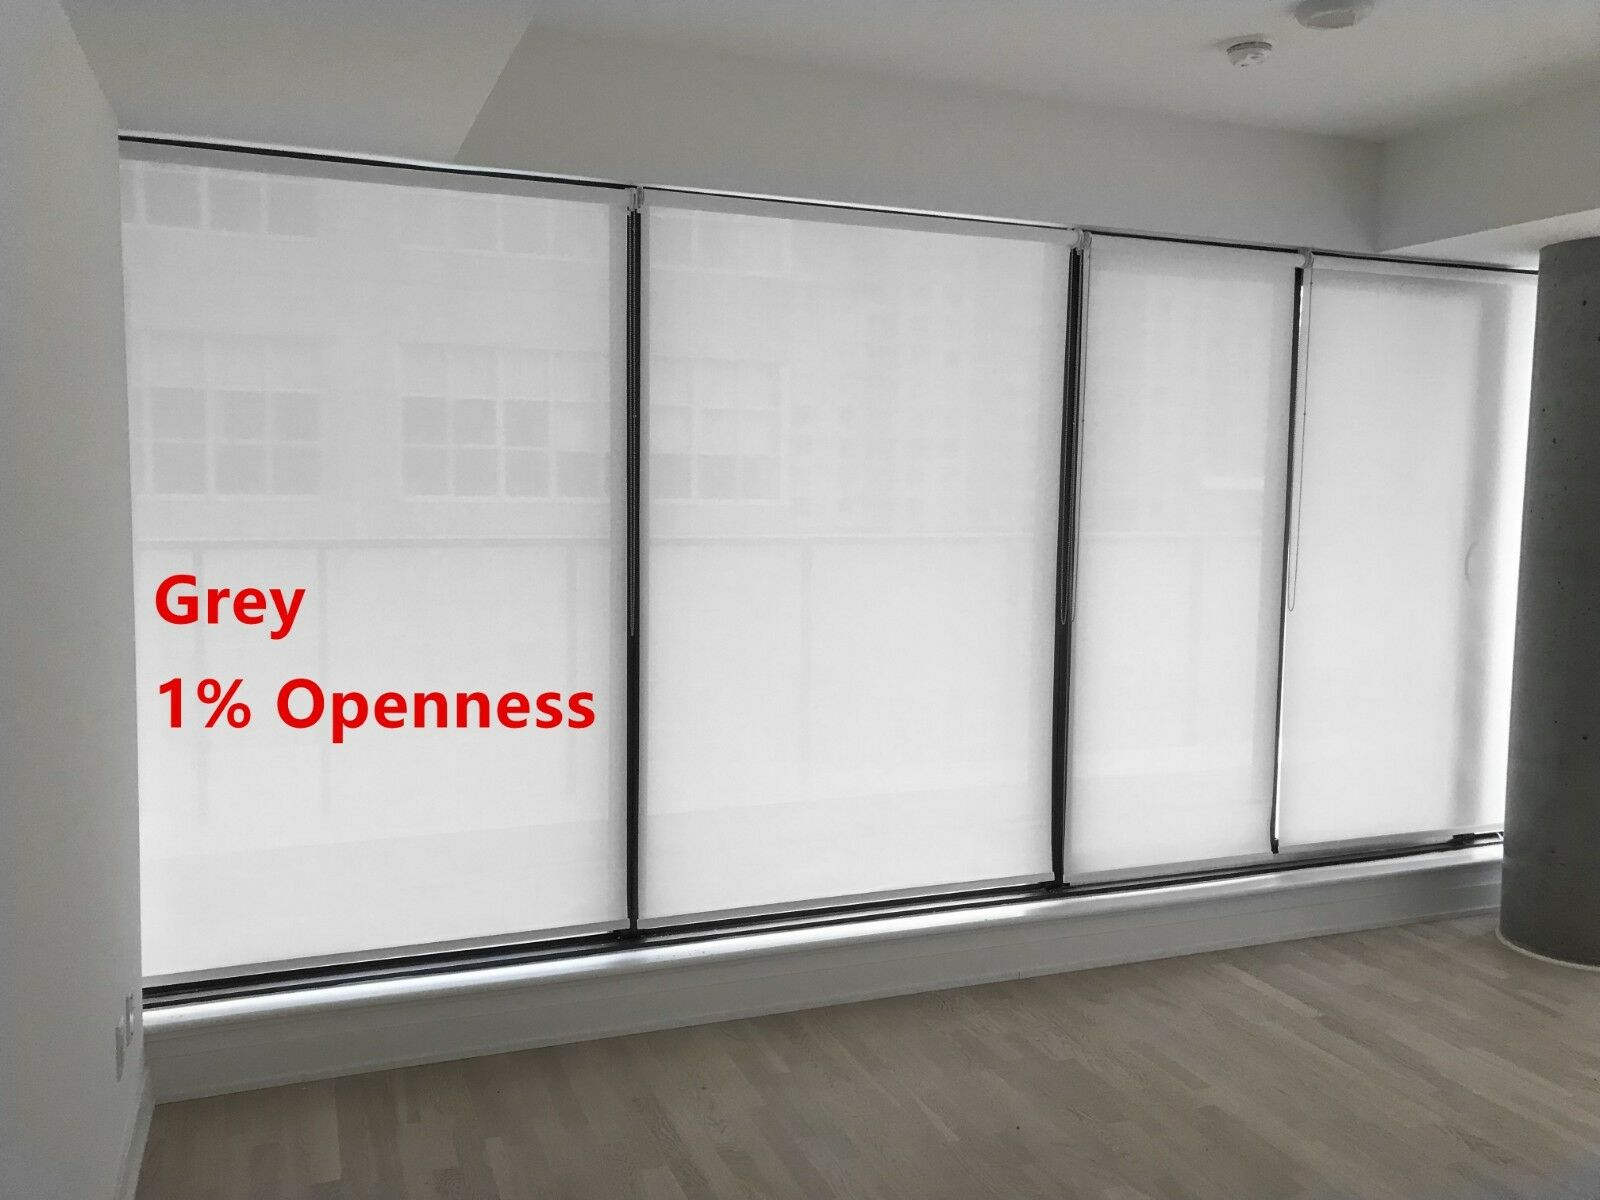 Roller Shade 1 Openness Grey Color Blind Home Window Custom Made In Canada Ebay